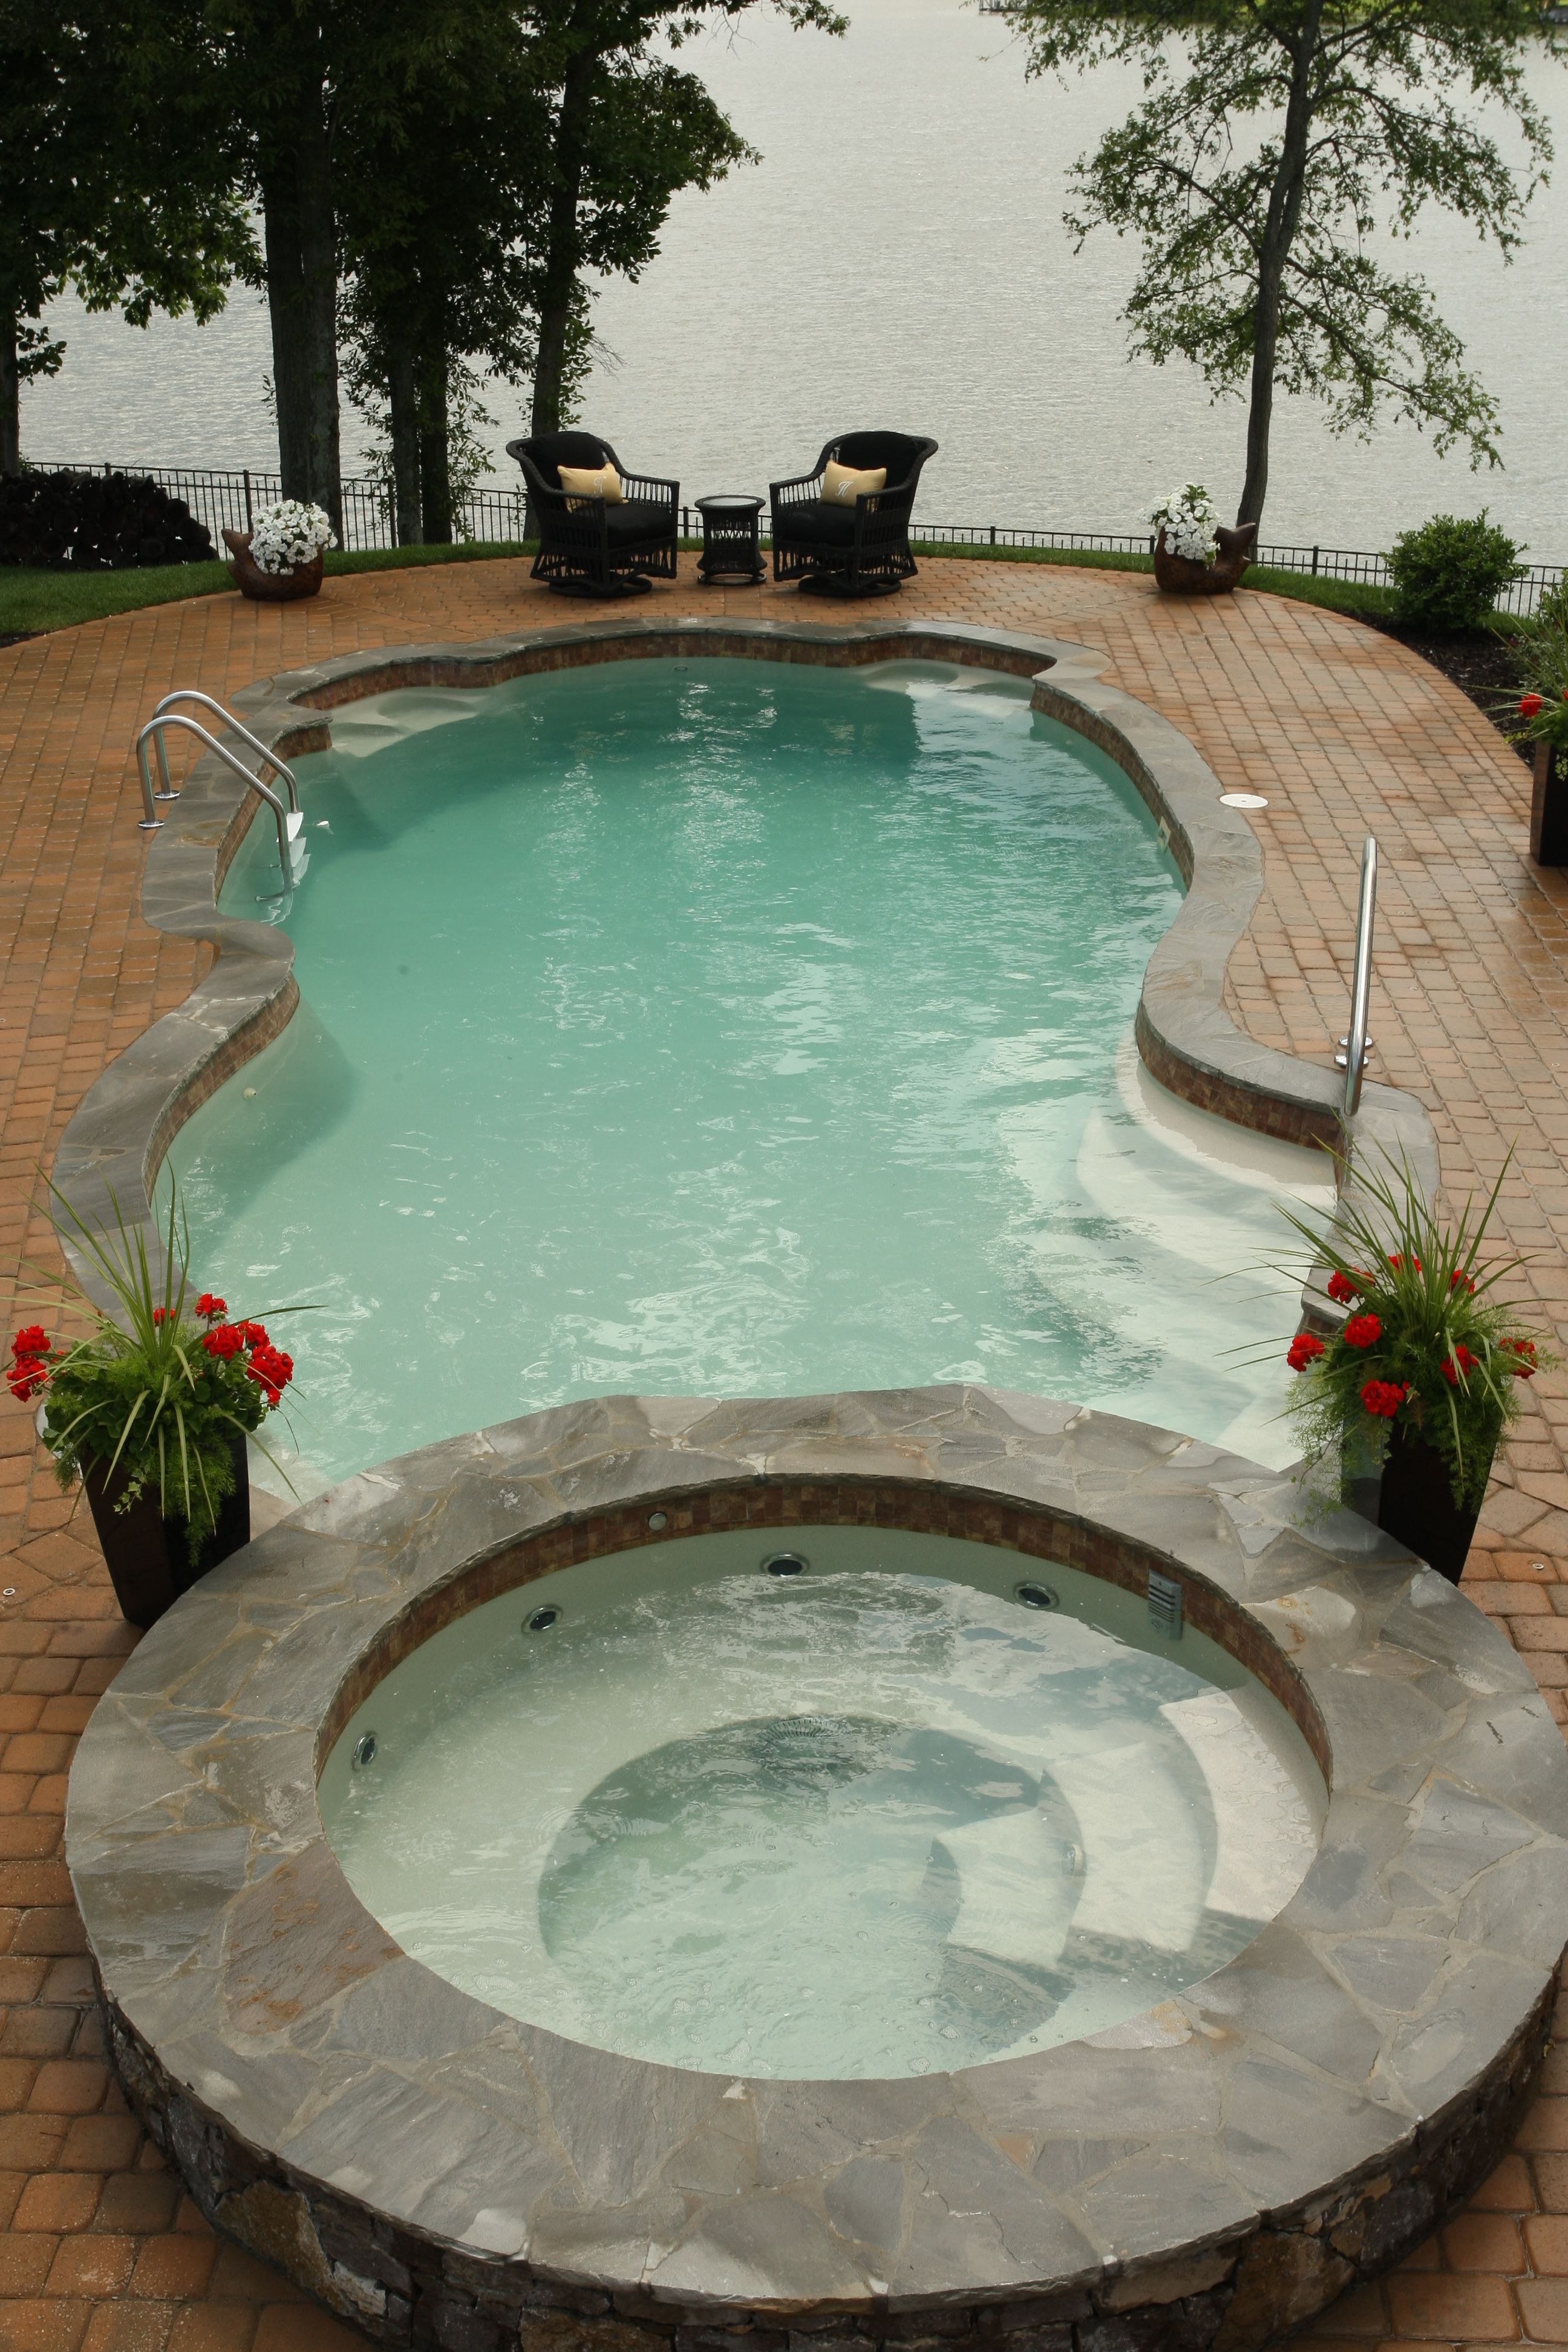 If Only I Could Go Back And Redo The Pool Fiberglass Pool Spa With A Paver Deck Indoors Out